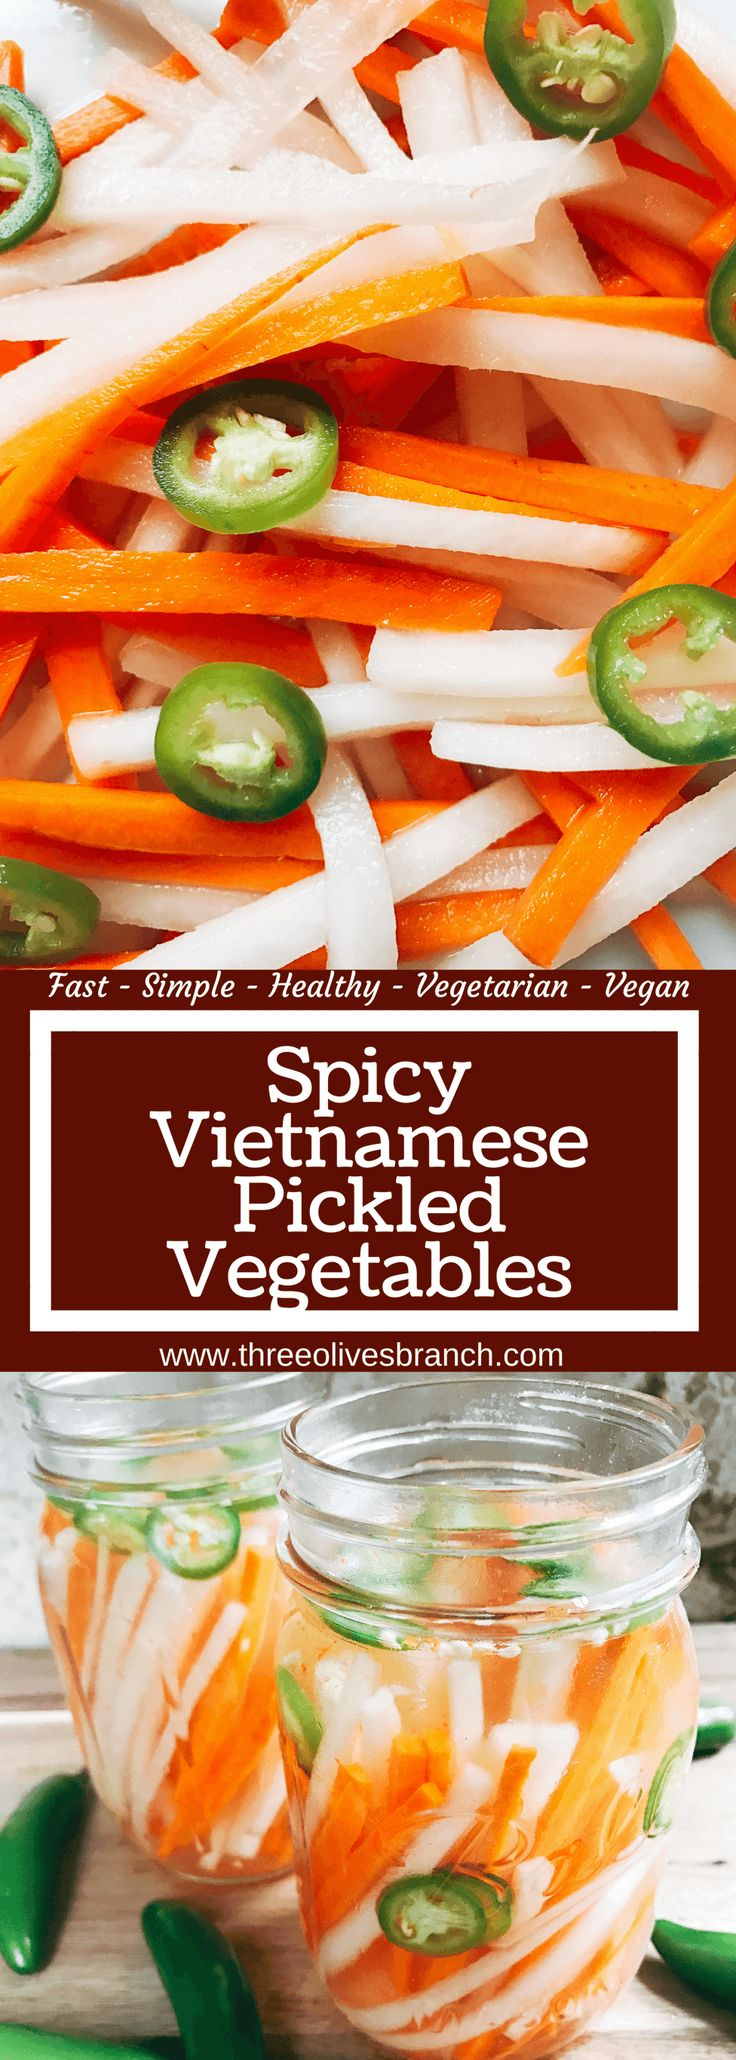 25+ best ideas about Vietnamese pickled vegetables on ...